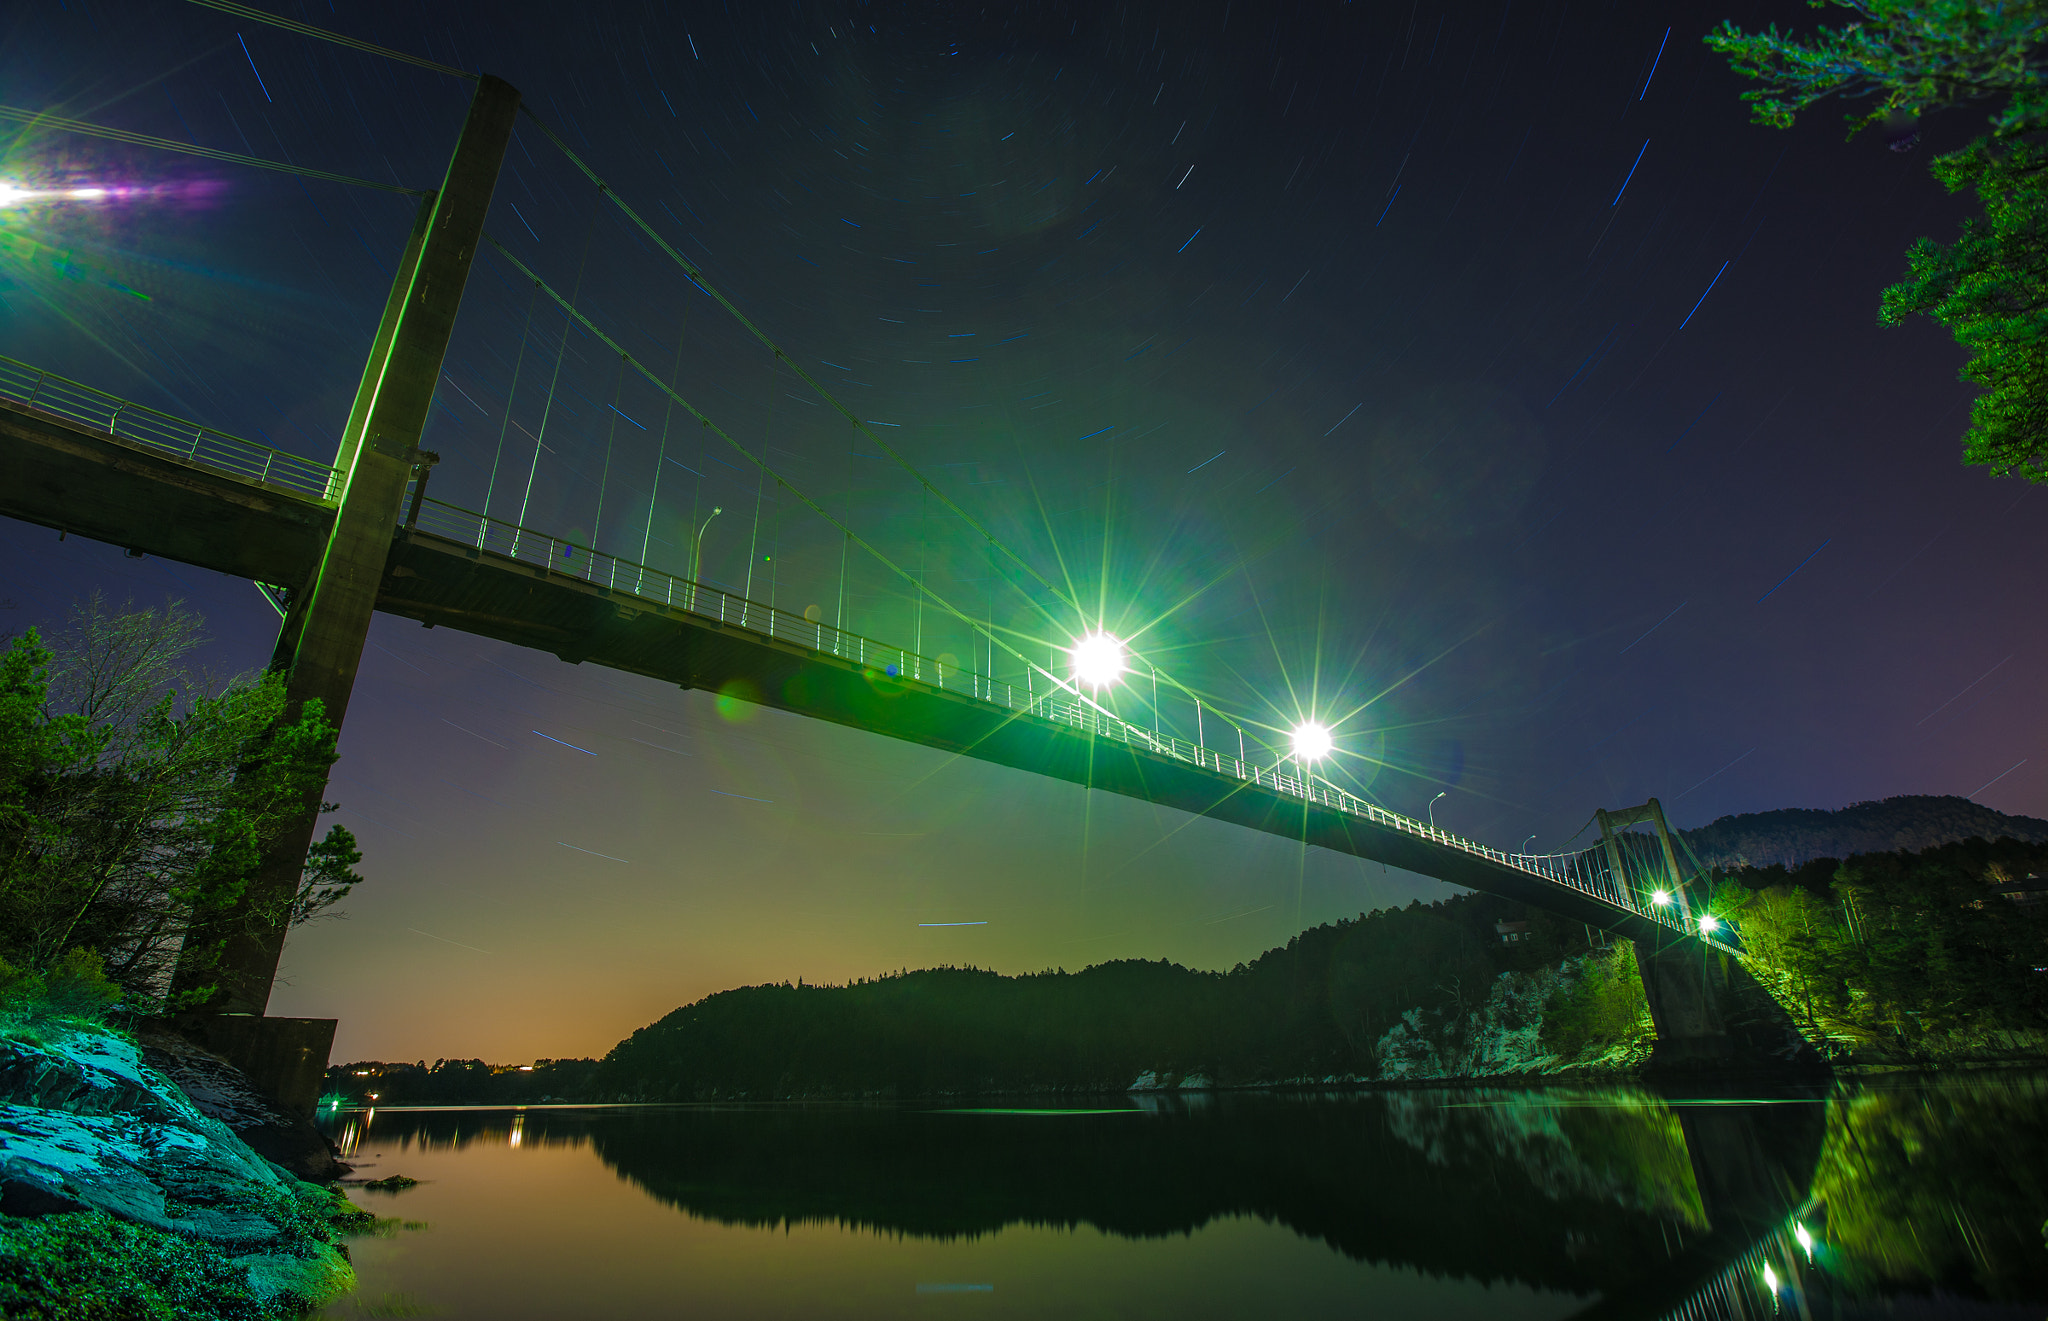 Photograph Bridge in aurora light by Bjarte Haugland on 500px